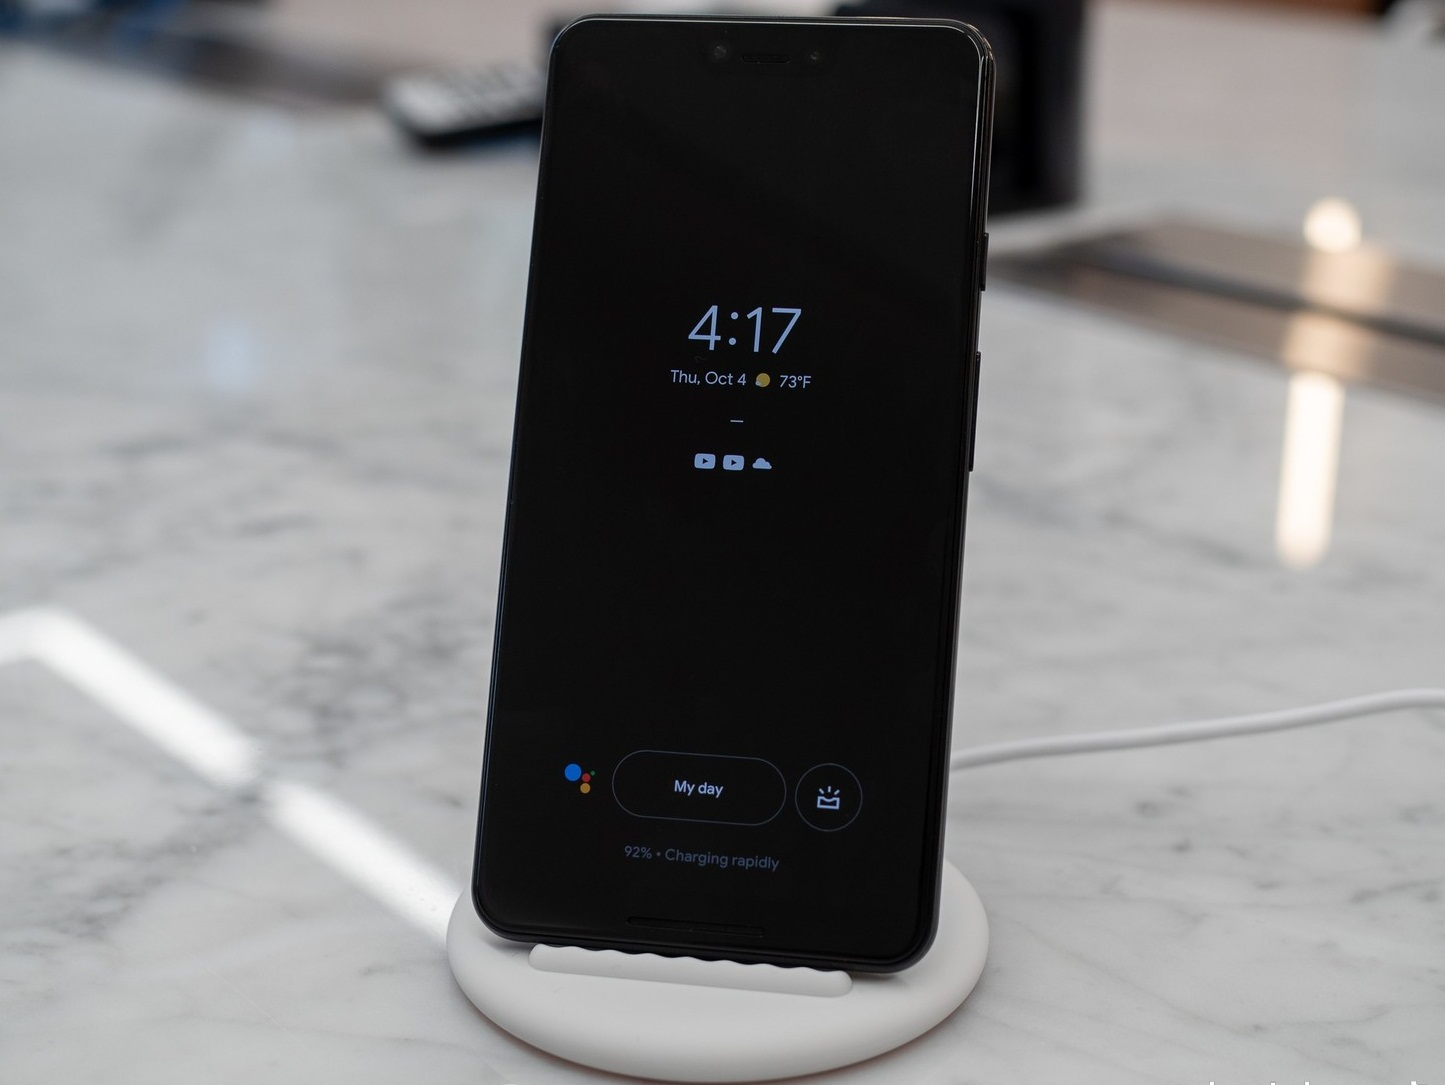 set up the pixel stand or wireless charger